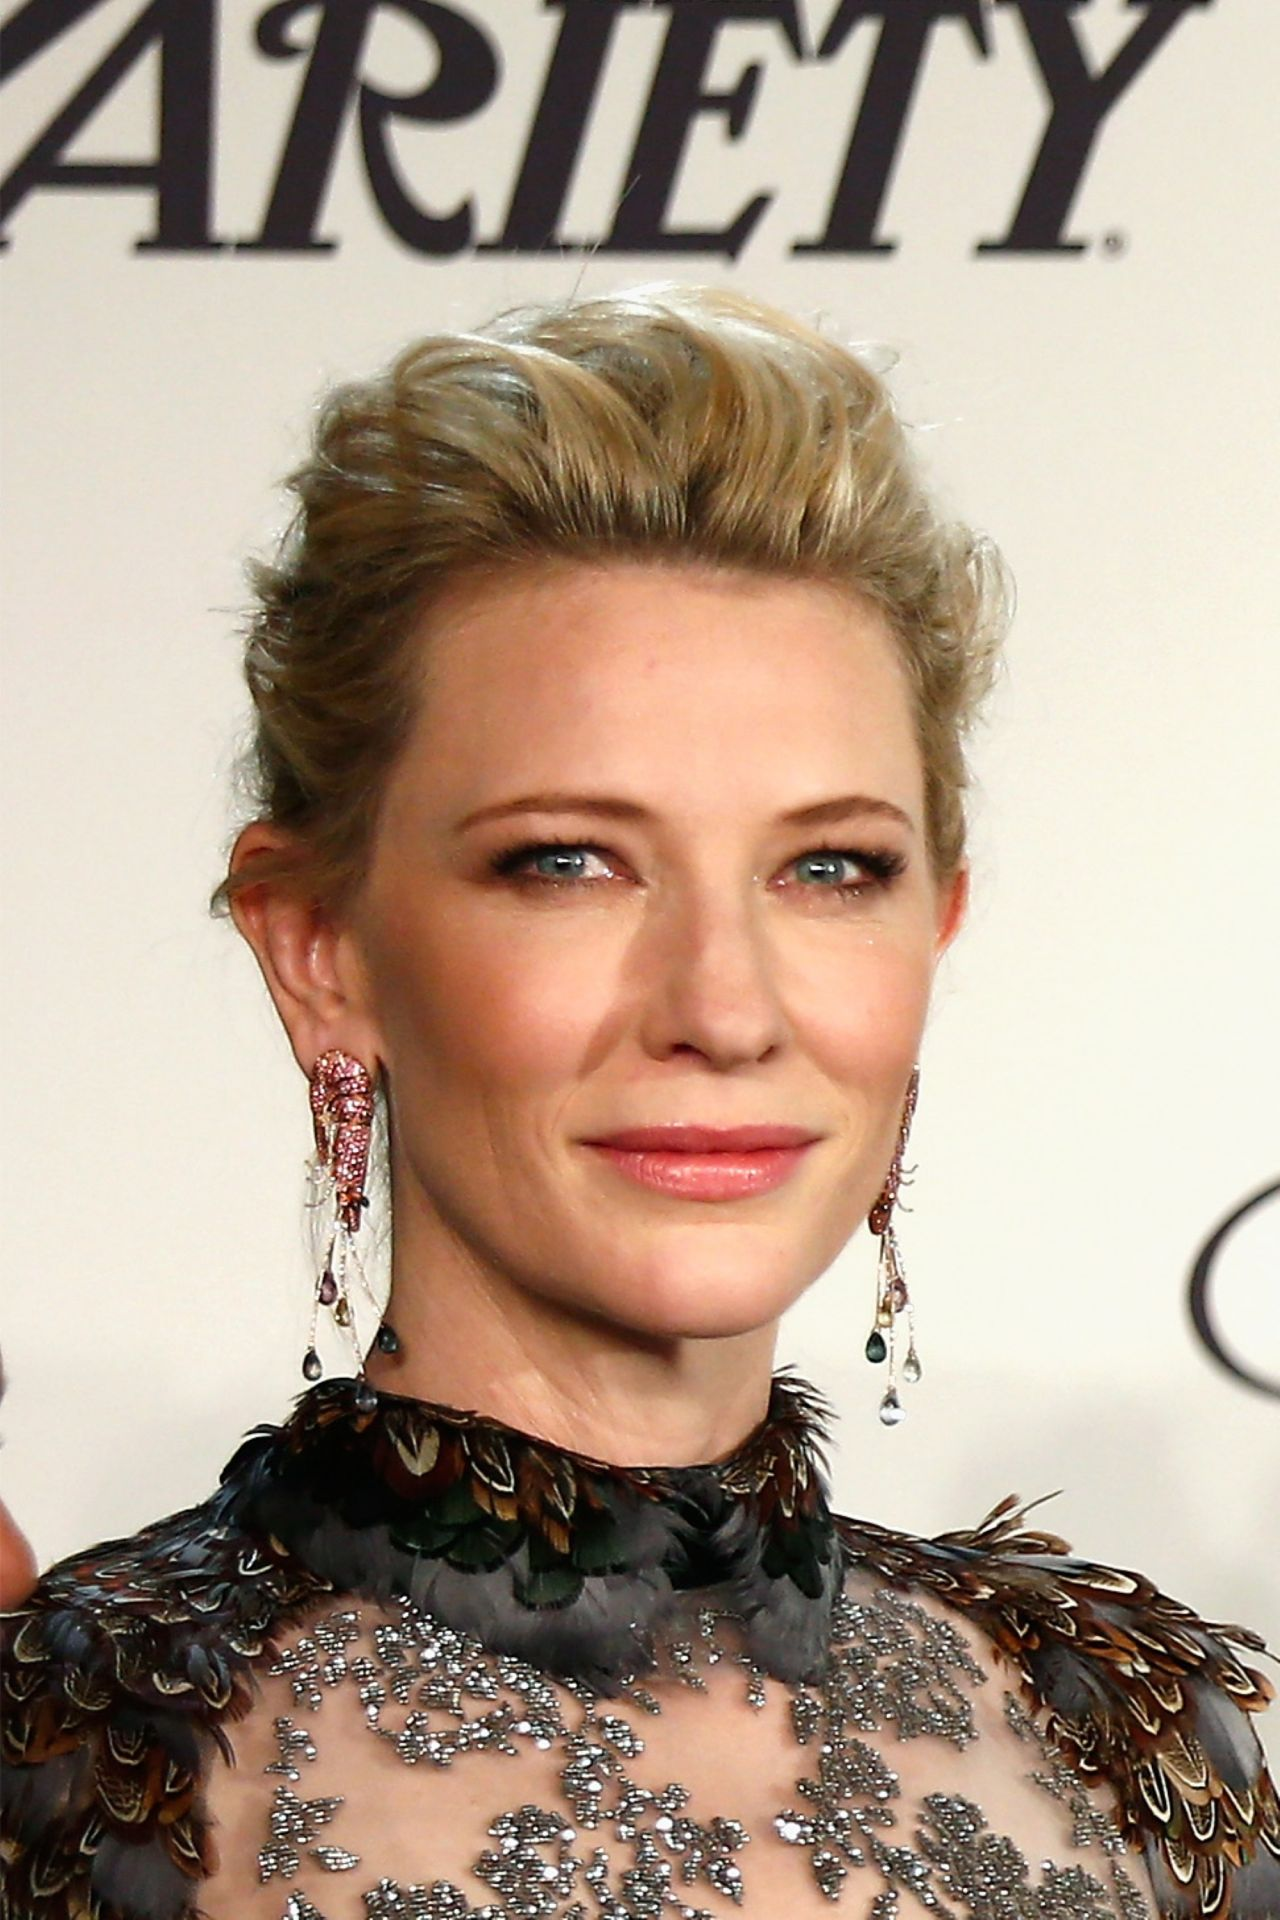 Cate Blanchett - Chopard Trophy at Cannes Film Festival 2014 Cate Blanchett Movies